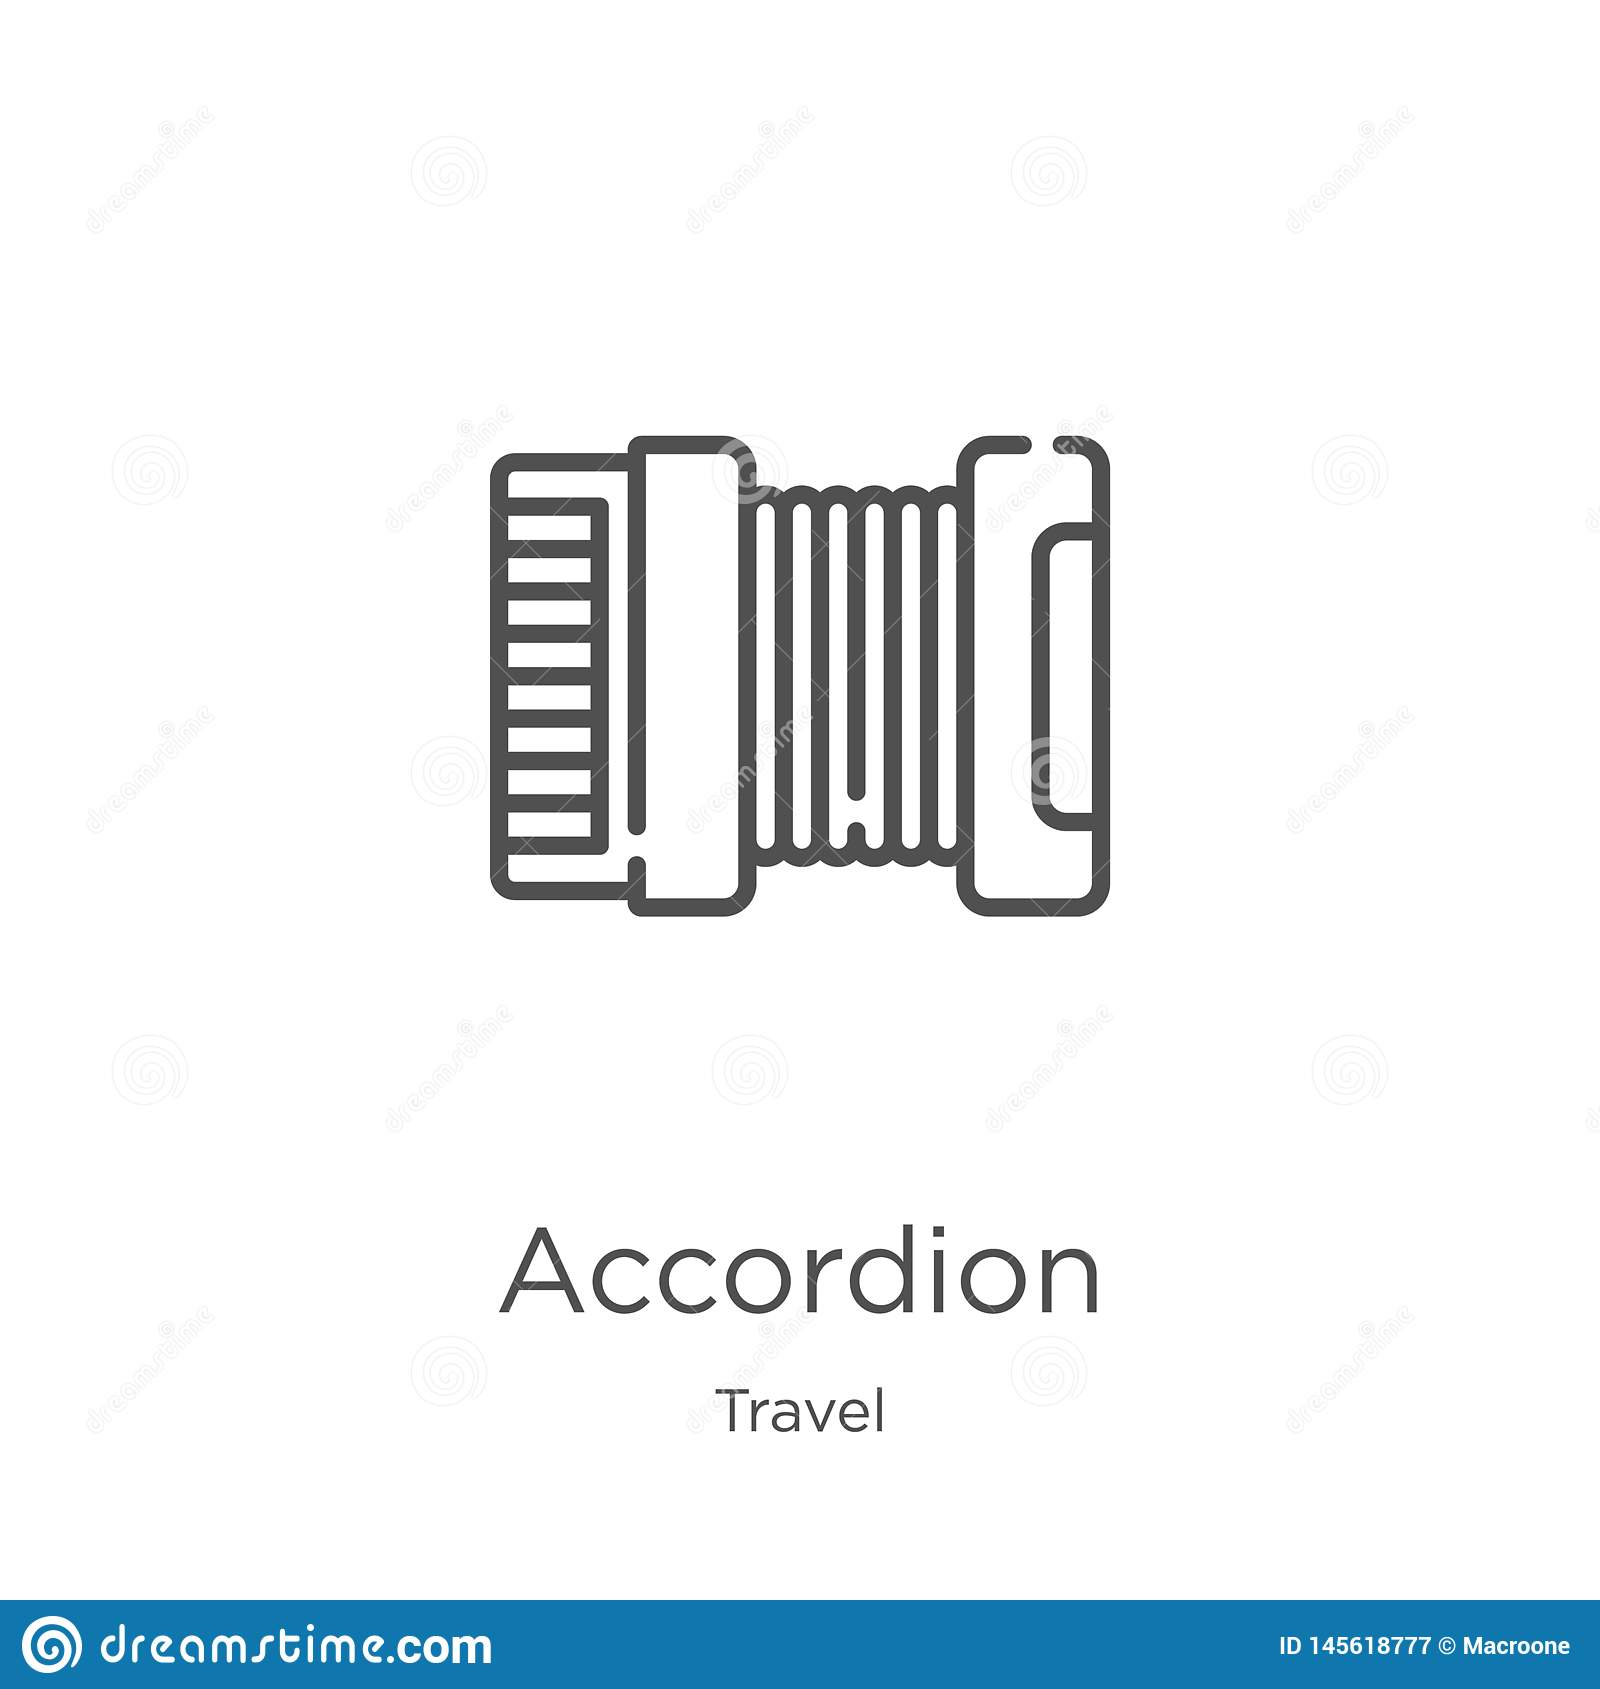 accordion icon vector from travel collection. Thin line accordion outline icon vector illustration. Outline, thin line accordion